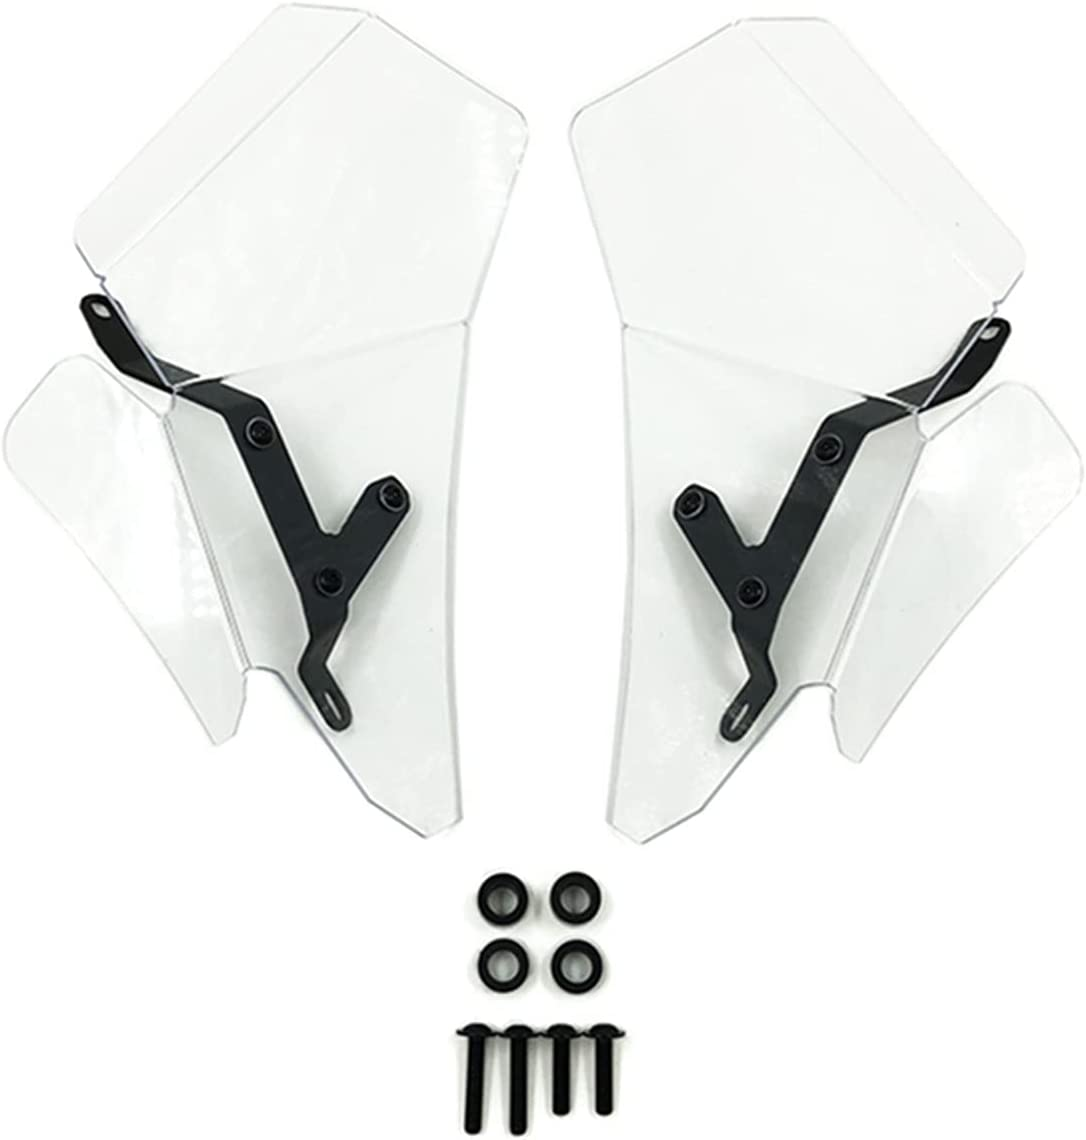 Motorcycle Windshield Max 83% OFF Spoiler for 1290 Super T R S Adventure Special price a limited time 109